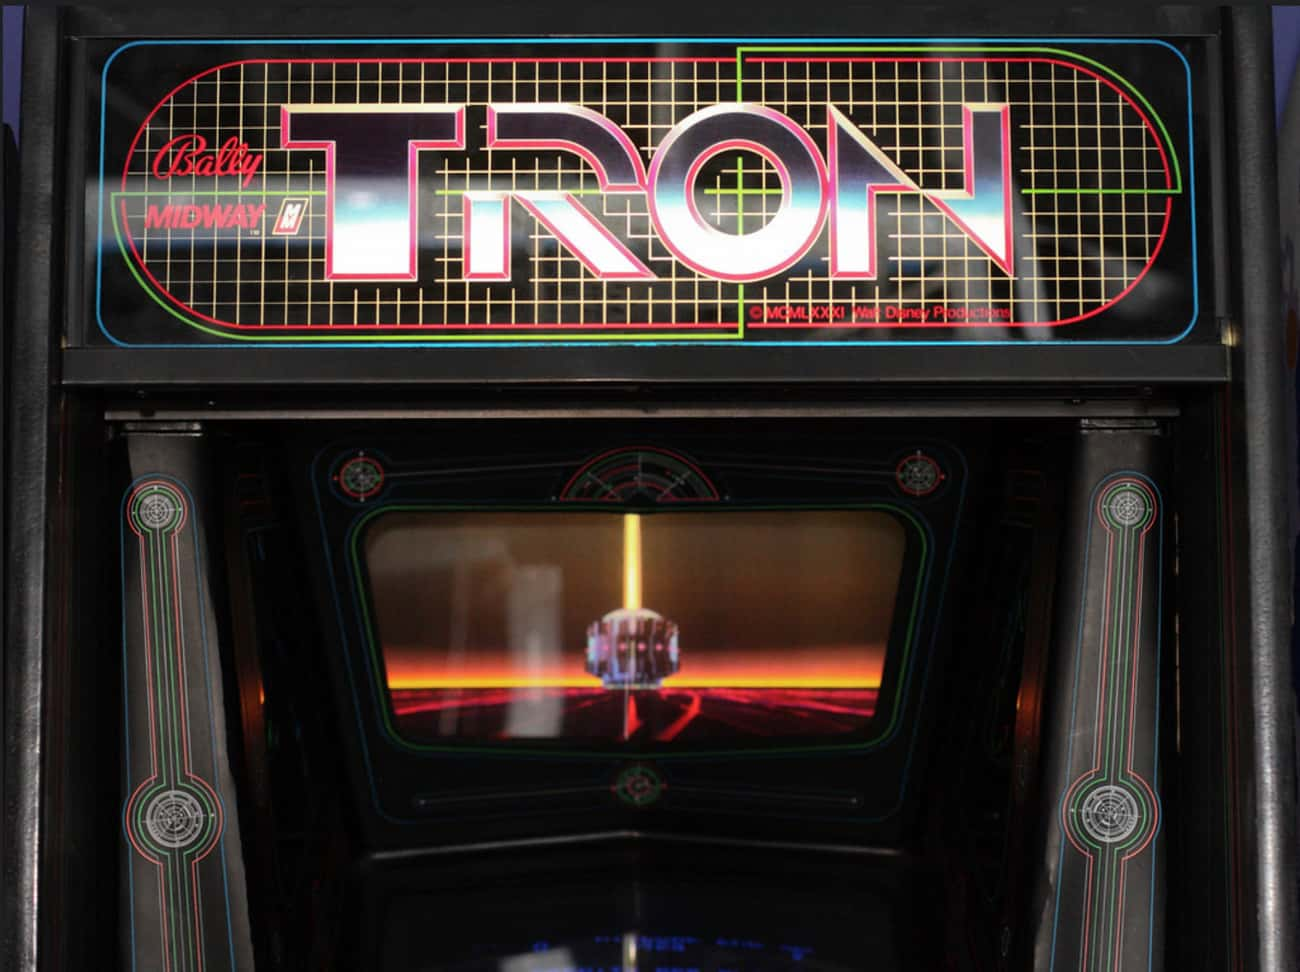 Tron is listed (or ranked) 1 on the list The Coolest Arcade Game Cabinet Art Ever!